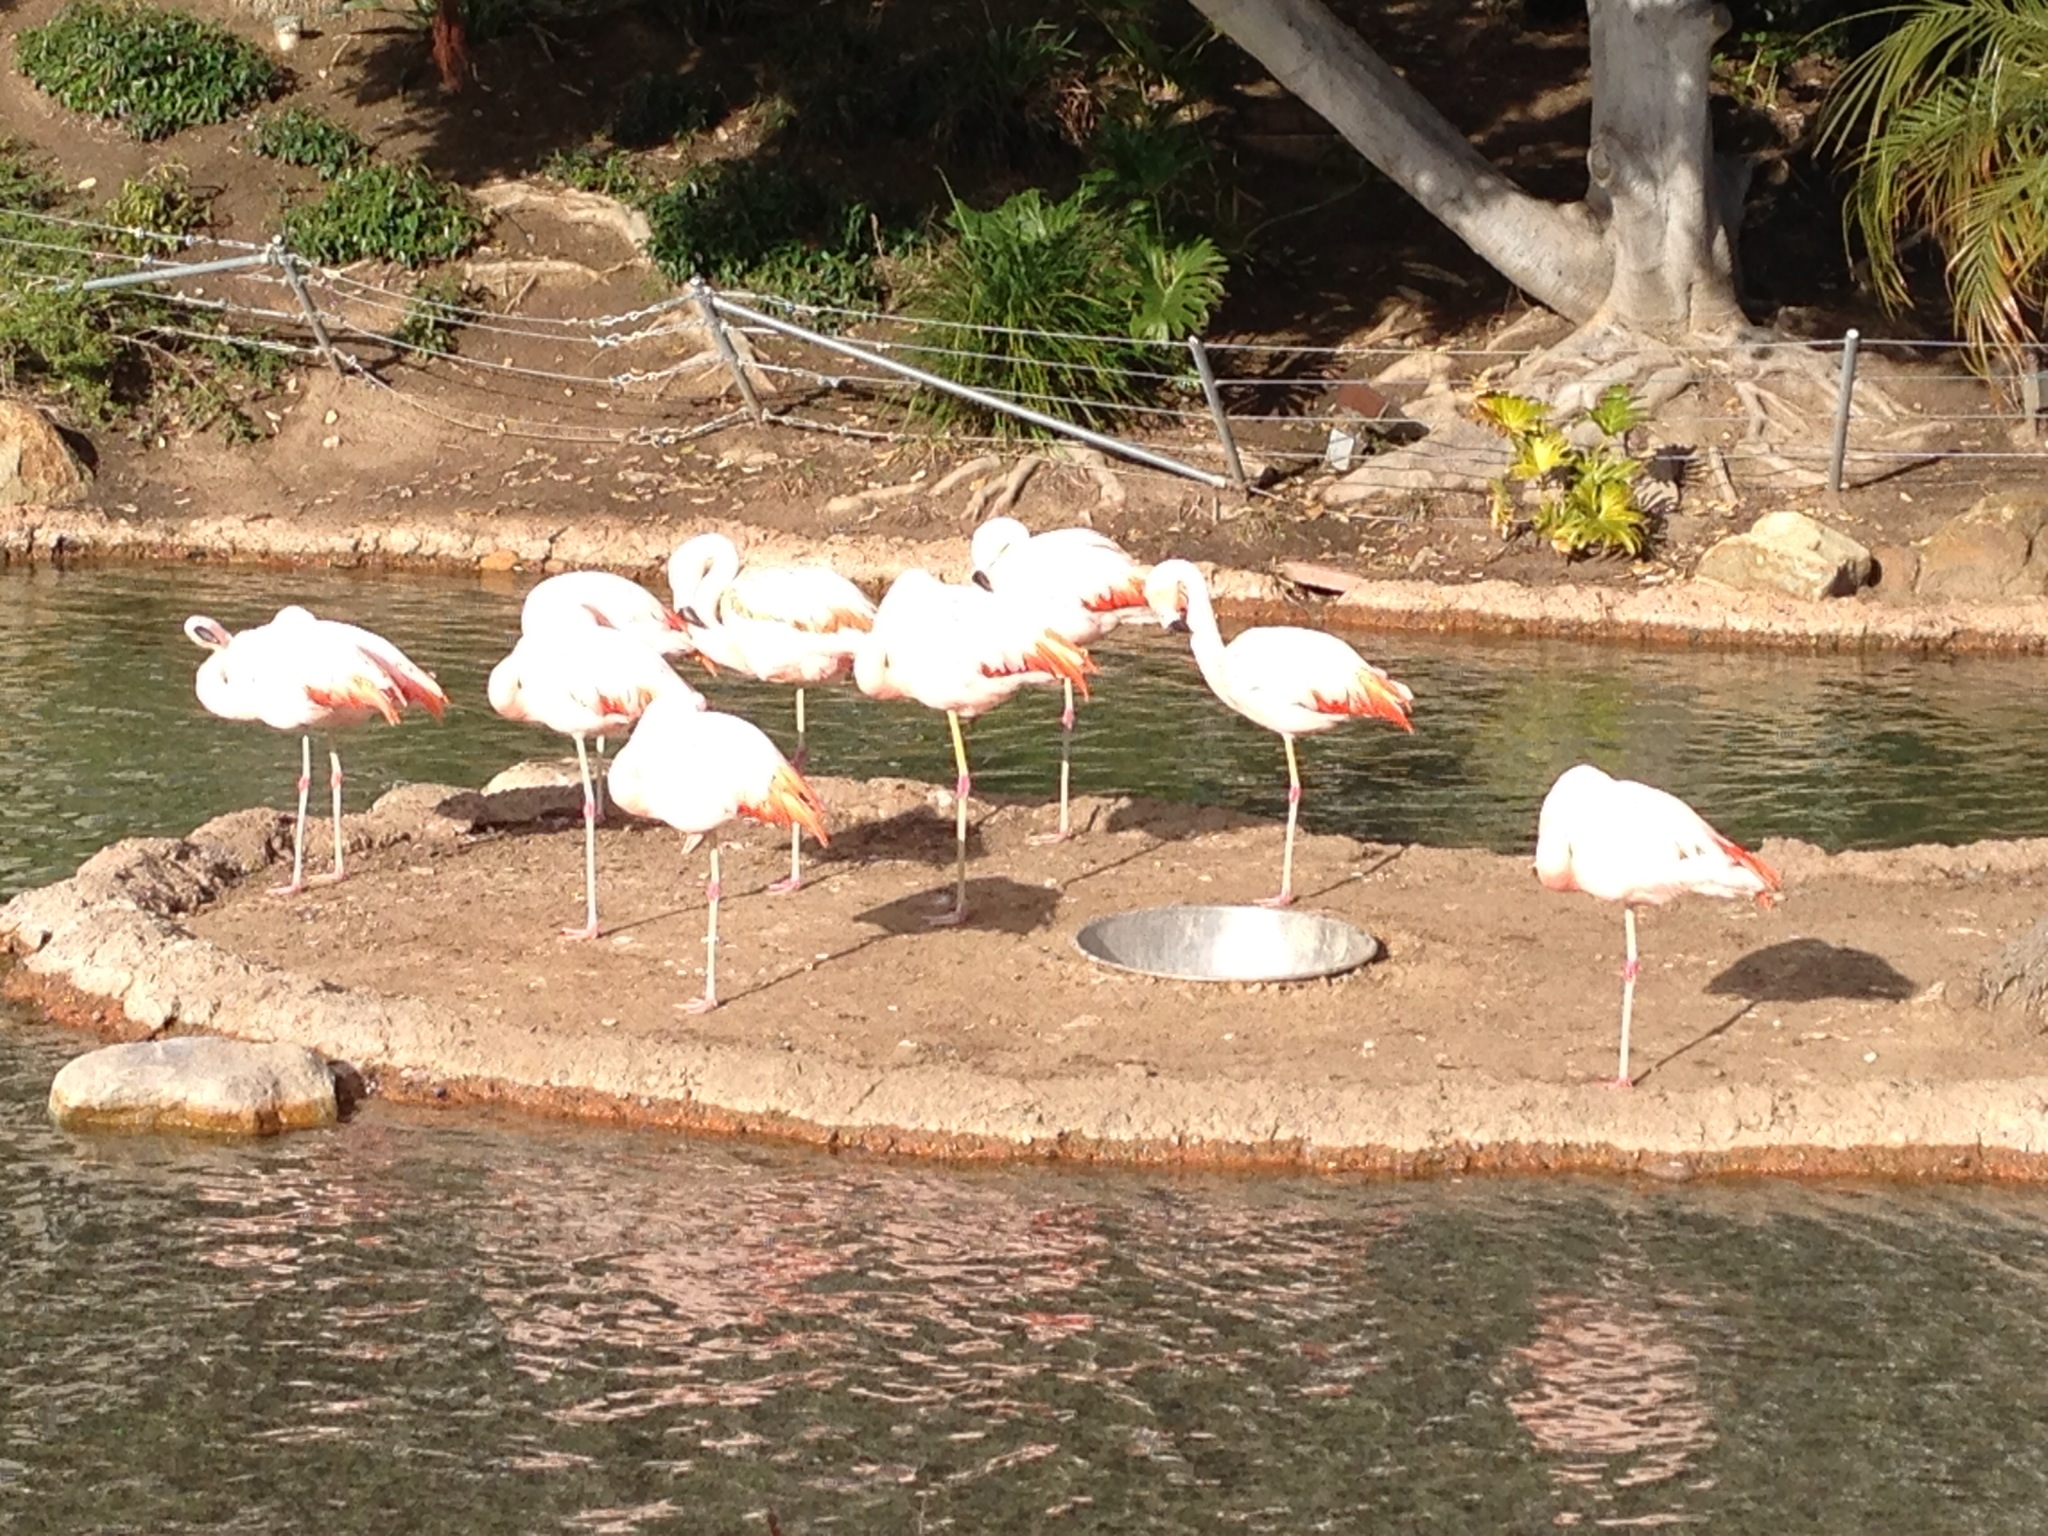 Flamingos are everywhere! We found this flock in from of the Marriott.